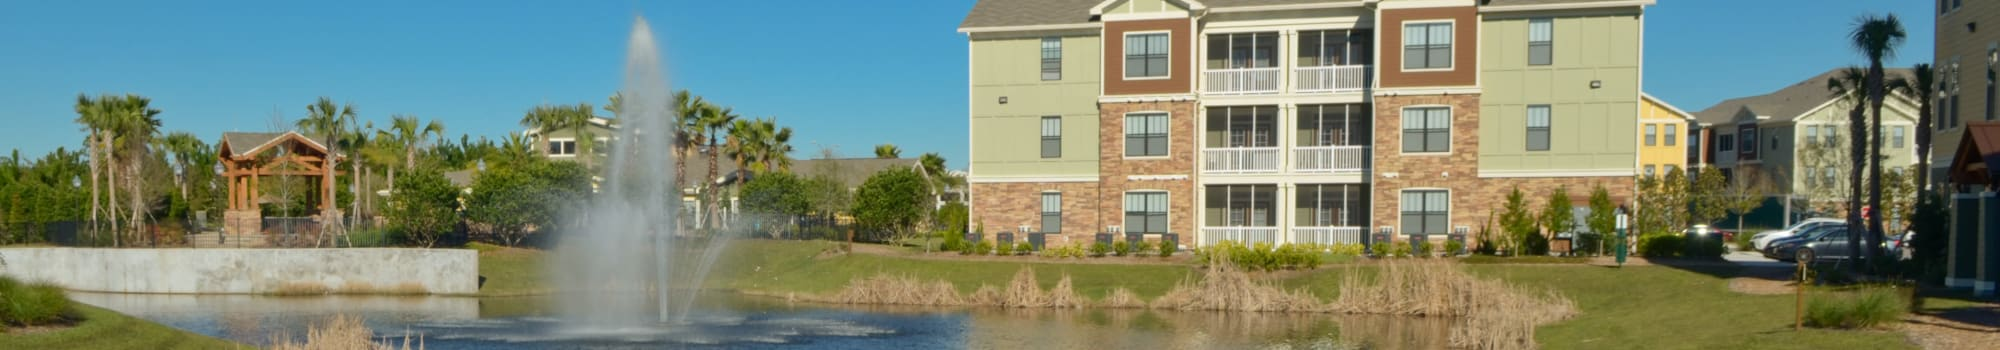 Floor Plans at Terraces at Town Center in Jacksonville, Florida